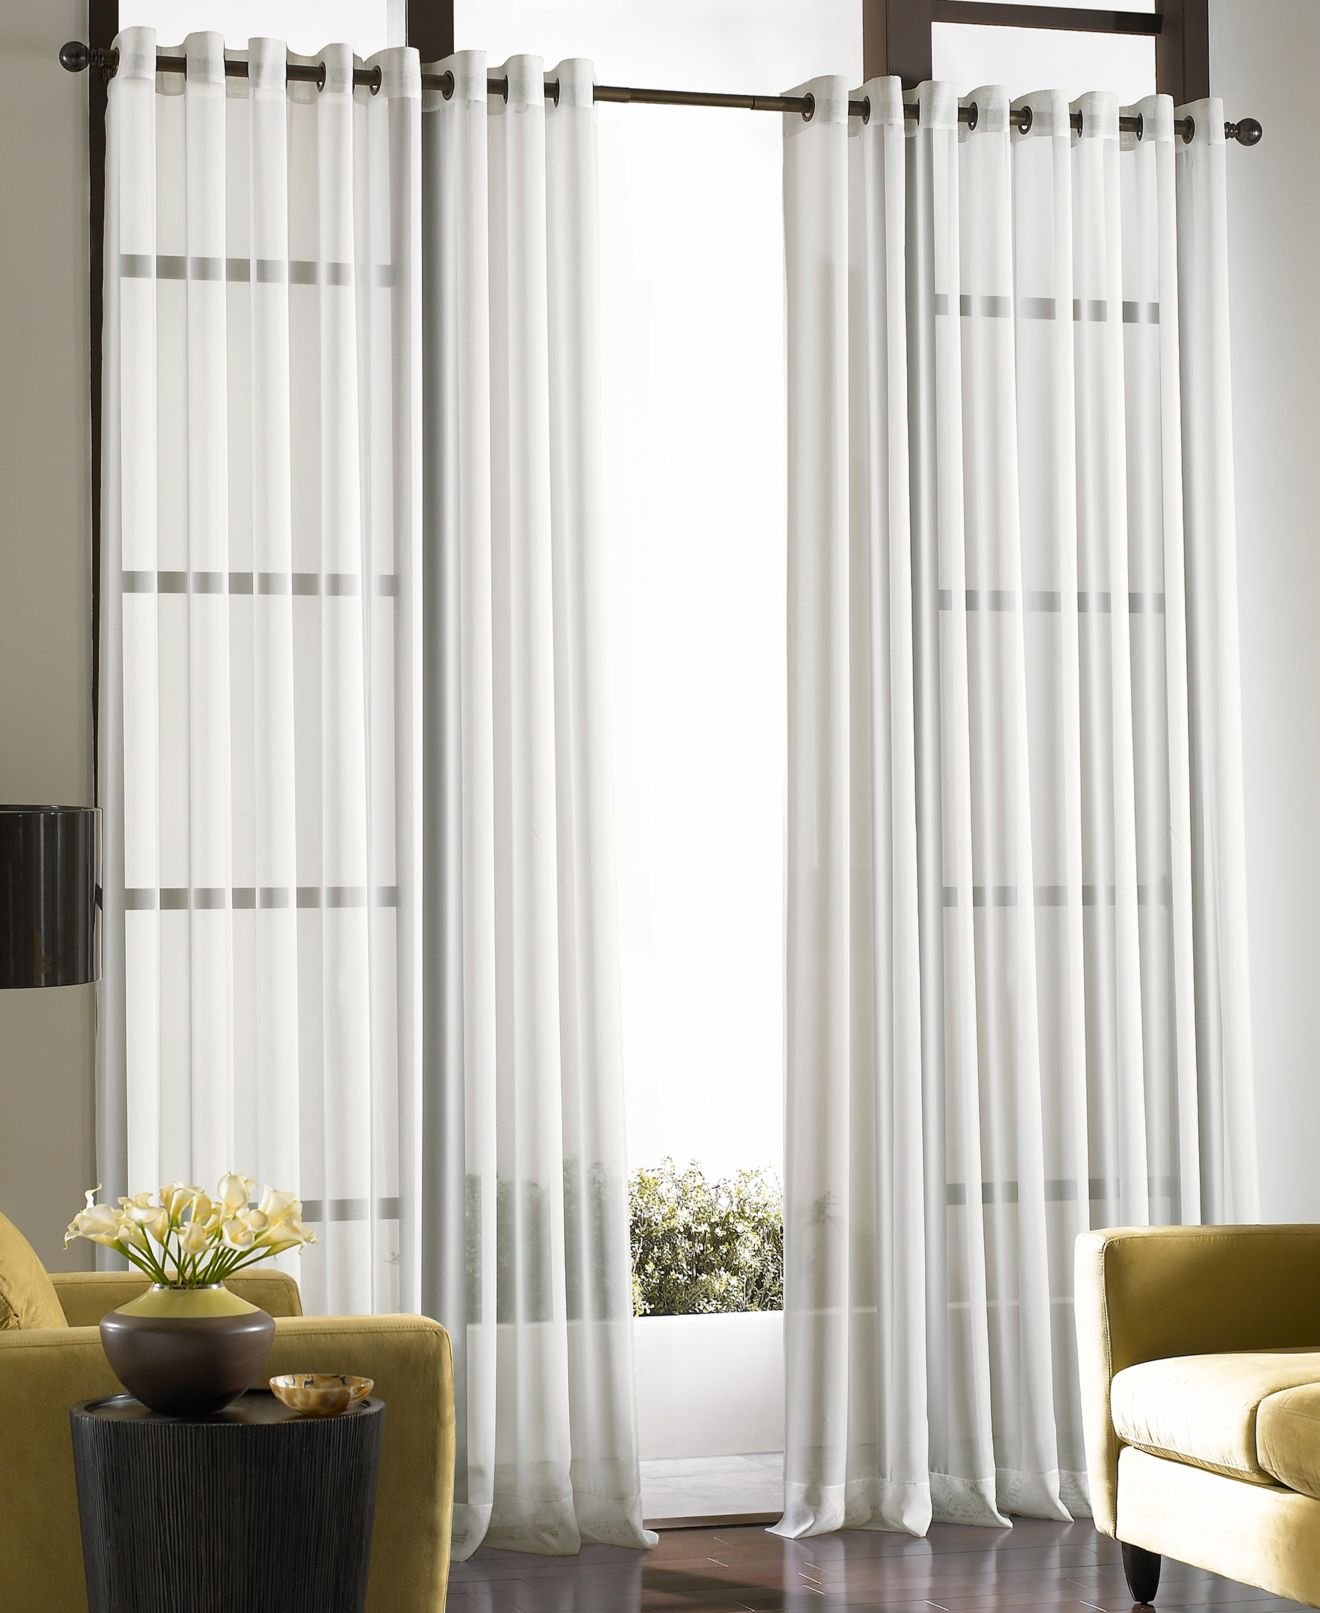 Macys Curtains For Living Room 2017 2018 Best Cars Reviews : 1739041fpx from autospecsinfo.com size 1320 x 1616 jpeg 309kB